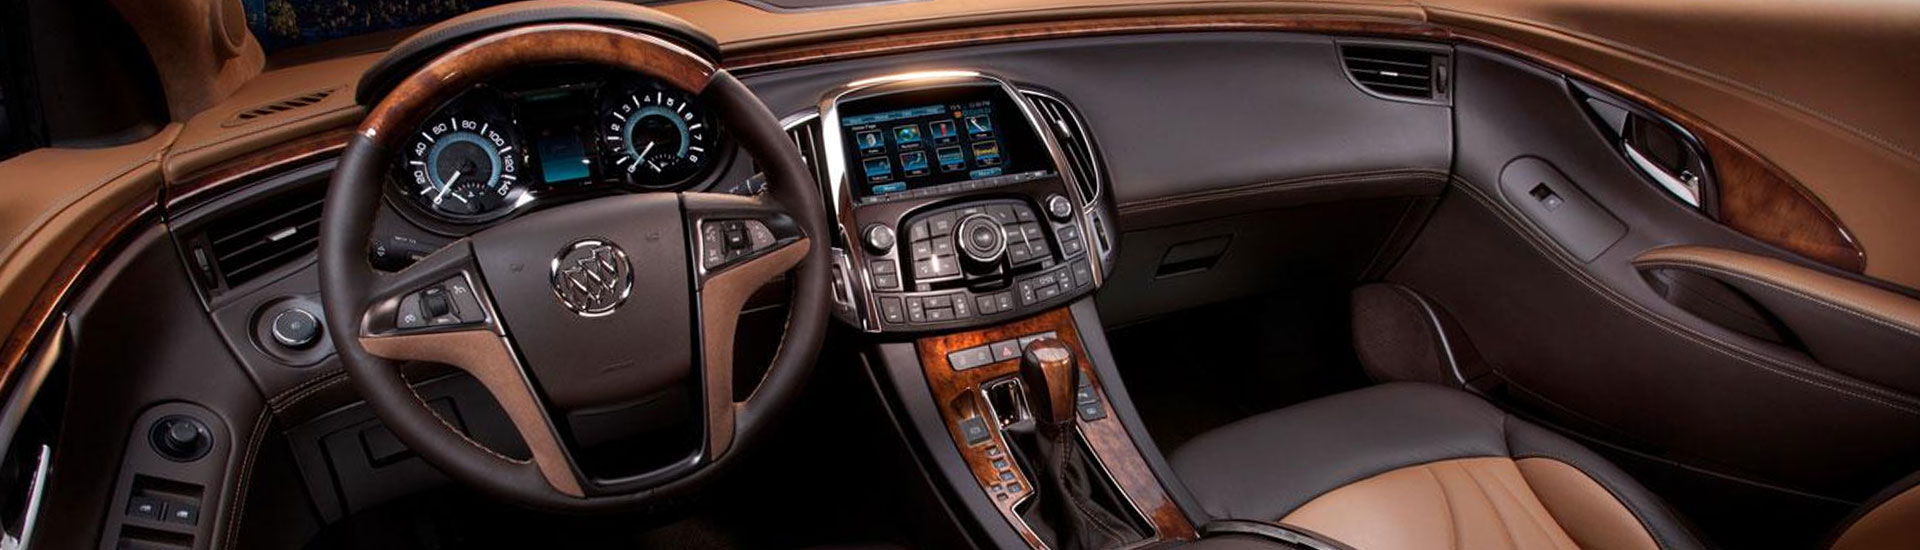 Buick Verano Dash Kits on 2014 Buick Lacrosse